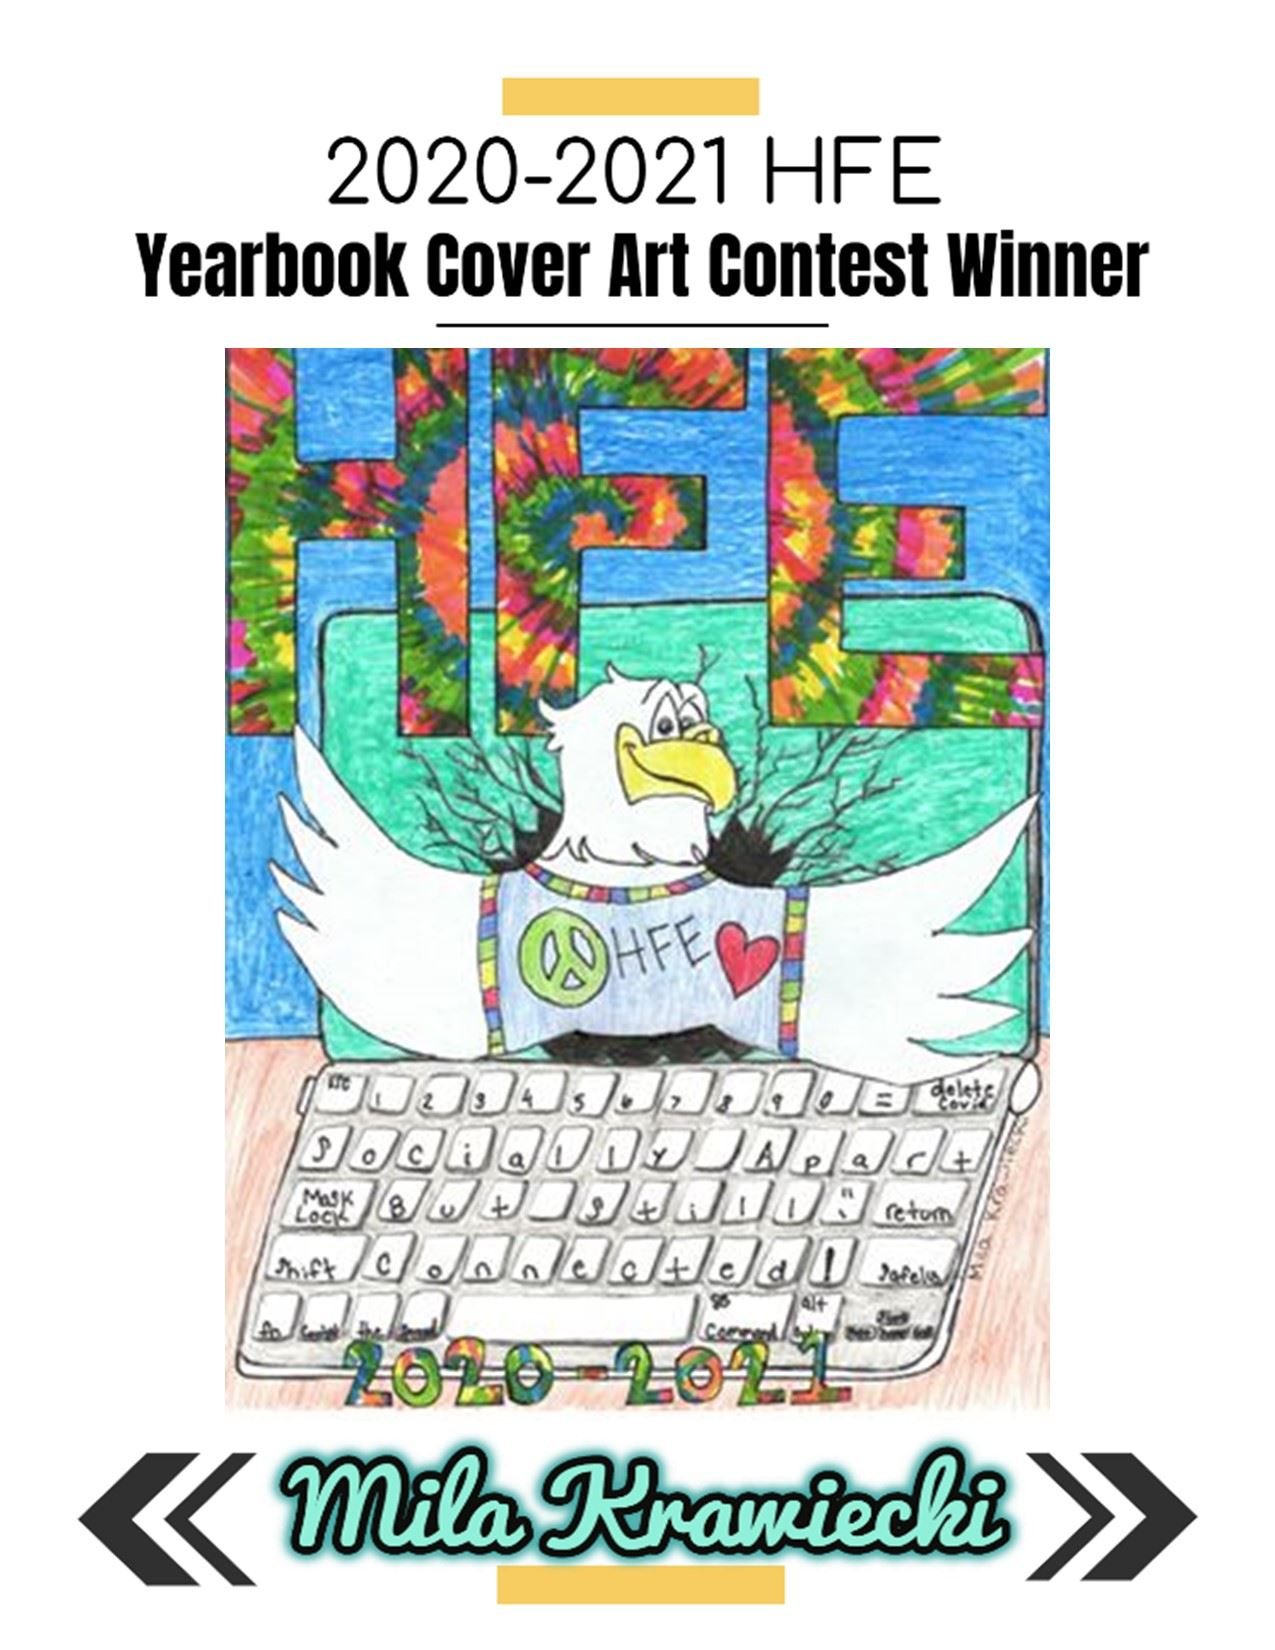 2020-2021 Yearbook Cover Art Winner